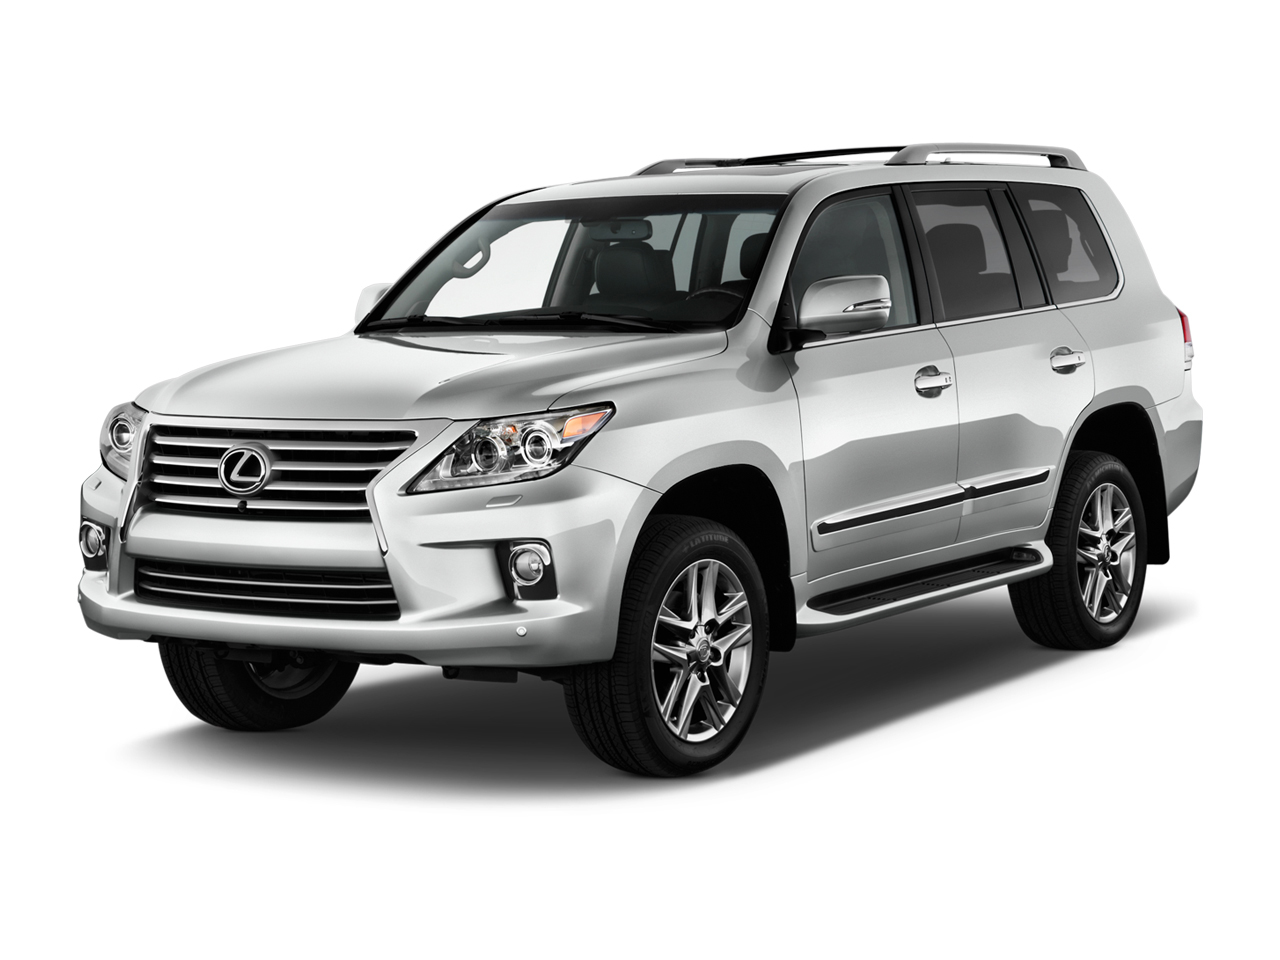 2014 lexus lx 570 review ratings specs prices and photos the car connection. Black Bedroom Furniture Sets. Home Design Ideas